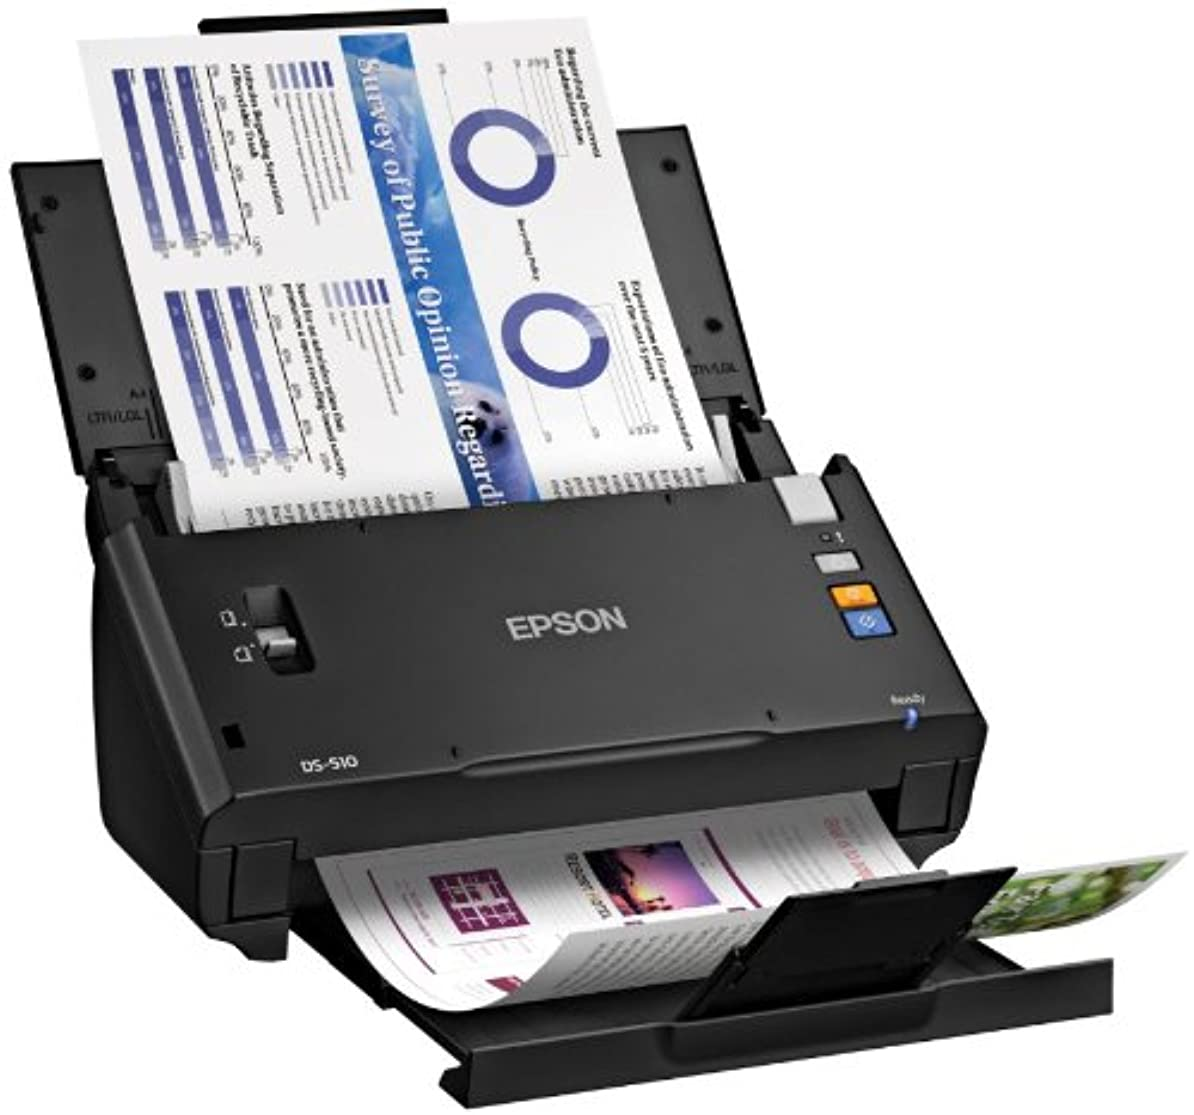 突き出す洗剤永遠のEpson WorkForce DS-510 Color Document Scanner by Epson [並行輸入品]